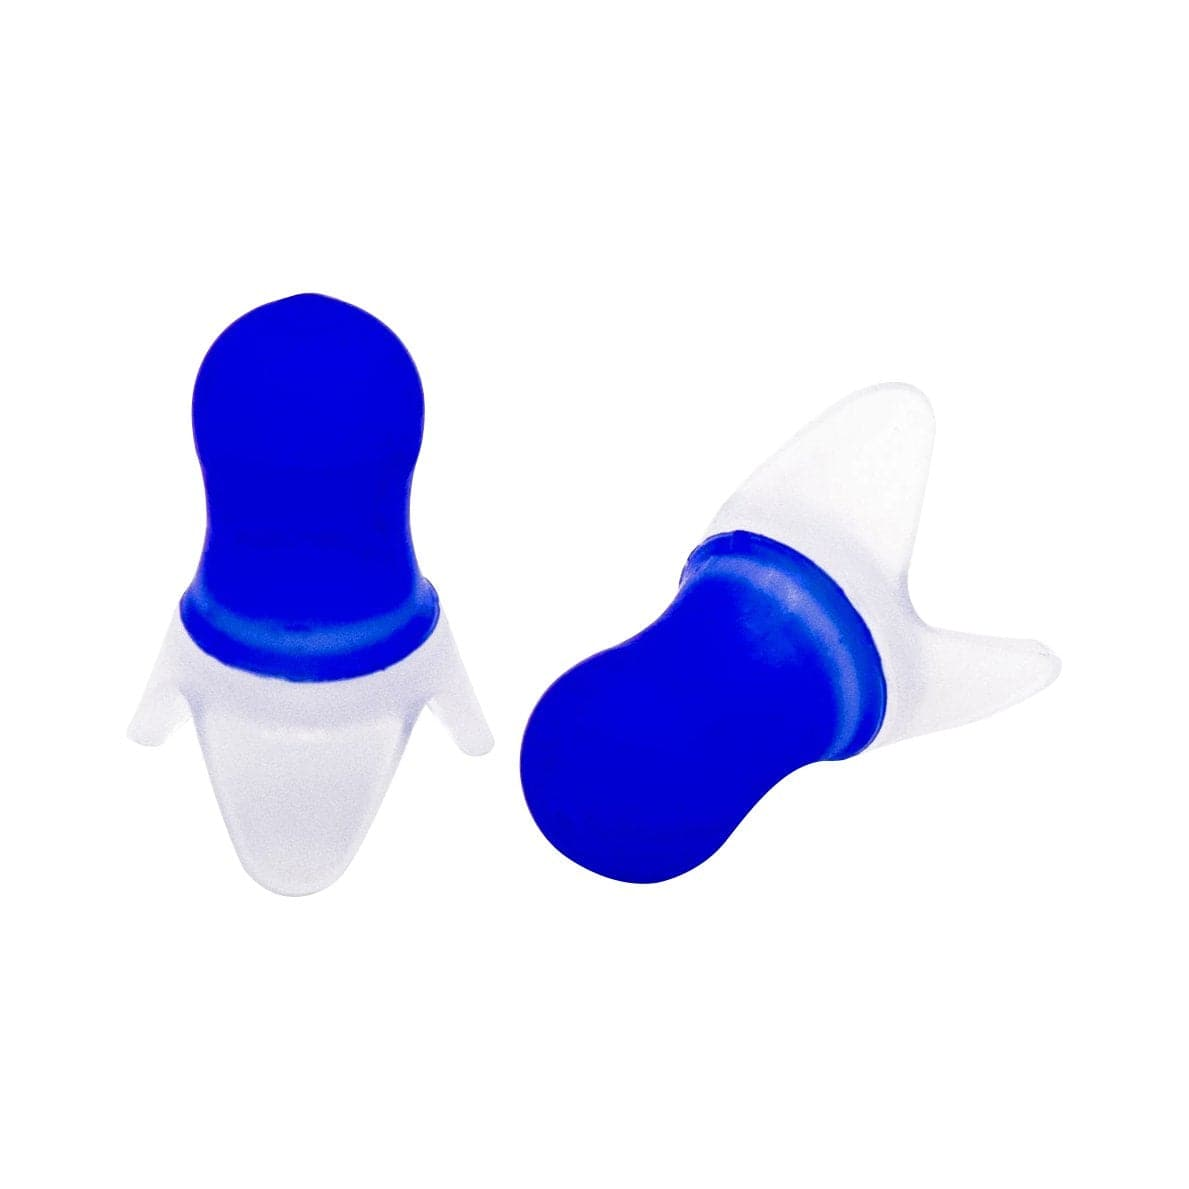 Earjobs™ Pressure Reducing Flying Ear Plugs 2.0 (2 Pairs + 2 Cases)